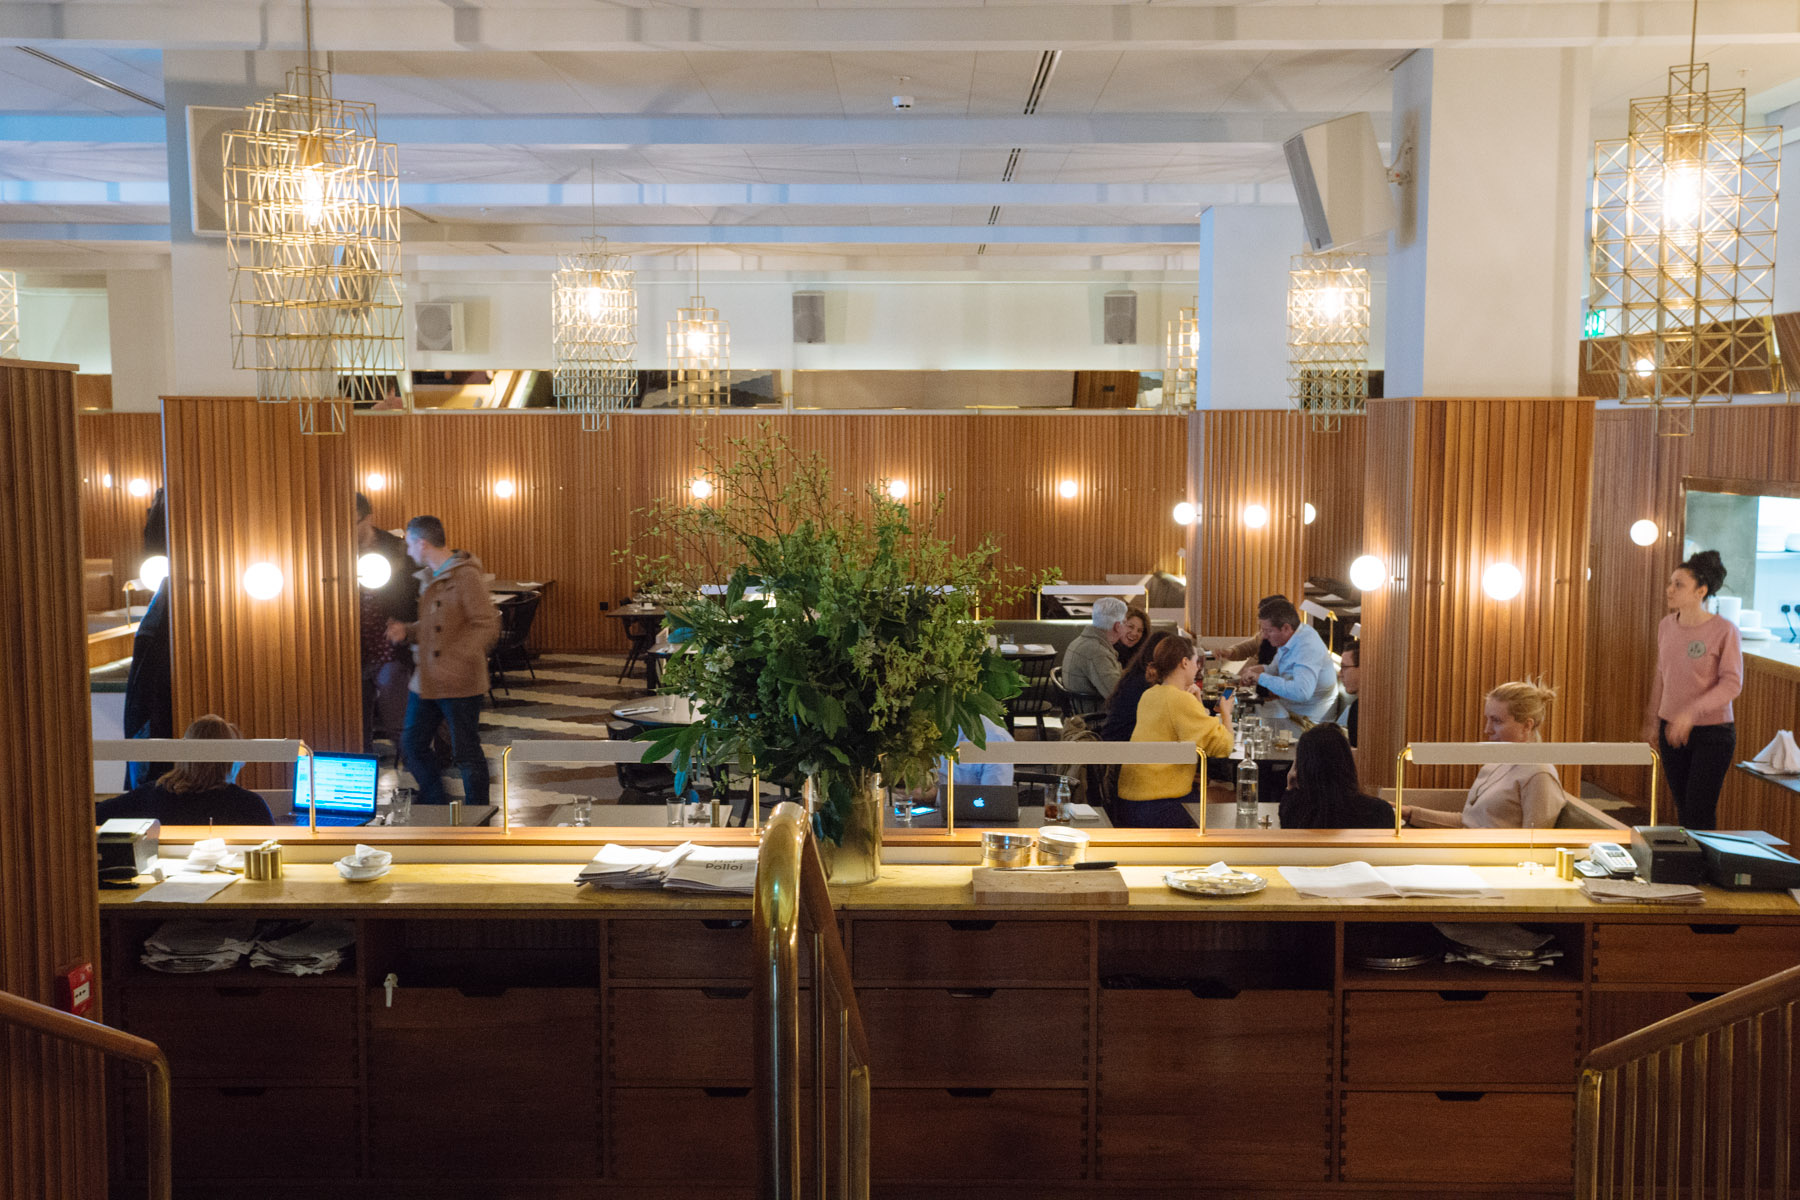 Where to stay in london the ace hotel london in for Ace hotel chicago design